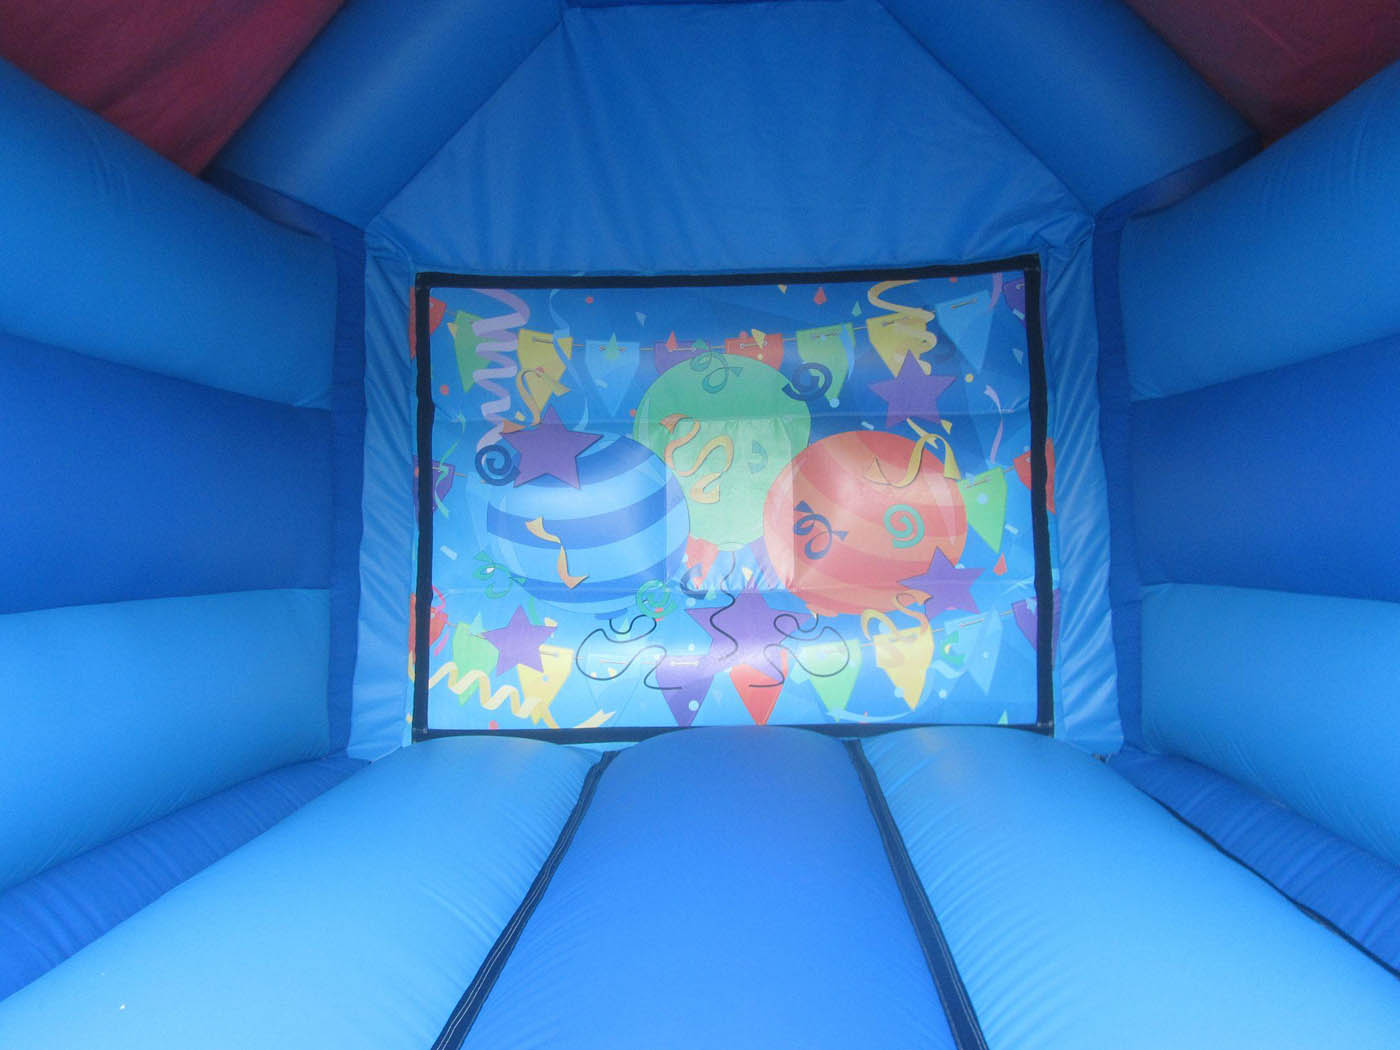 Bouncy Castle Back wall with Velcro and Party Artwork